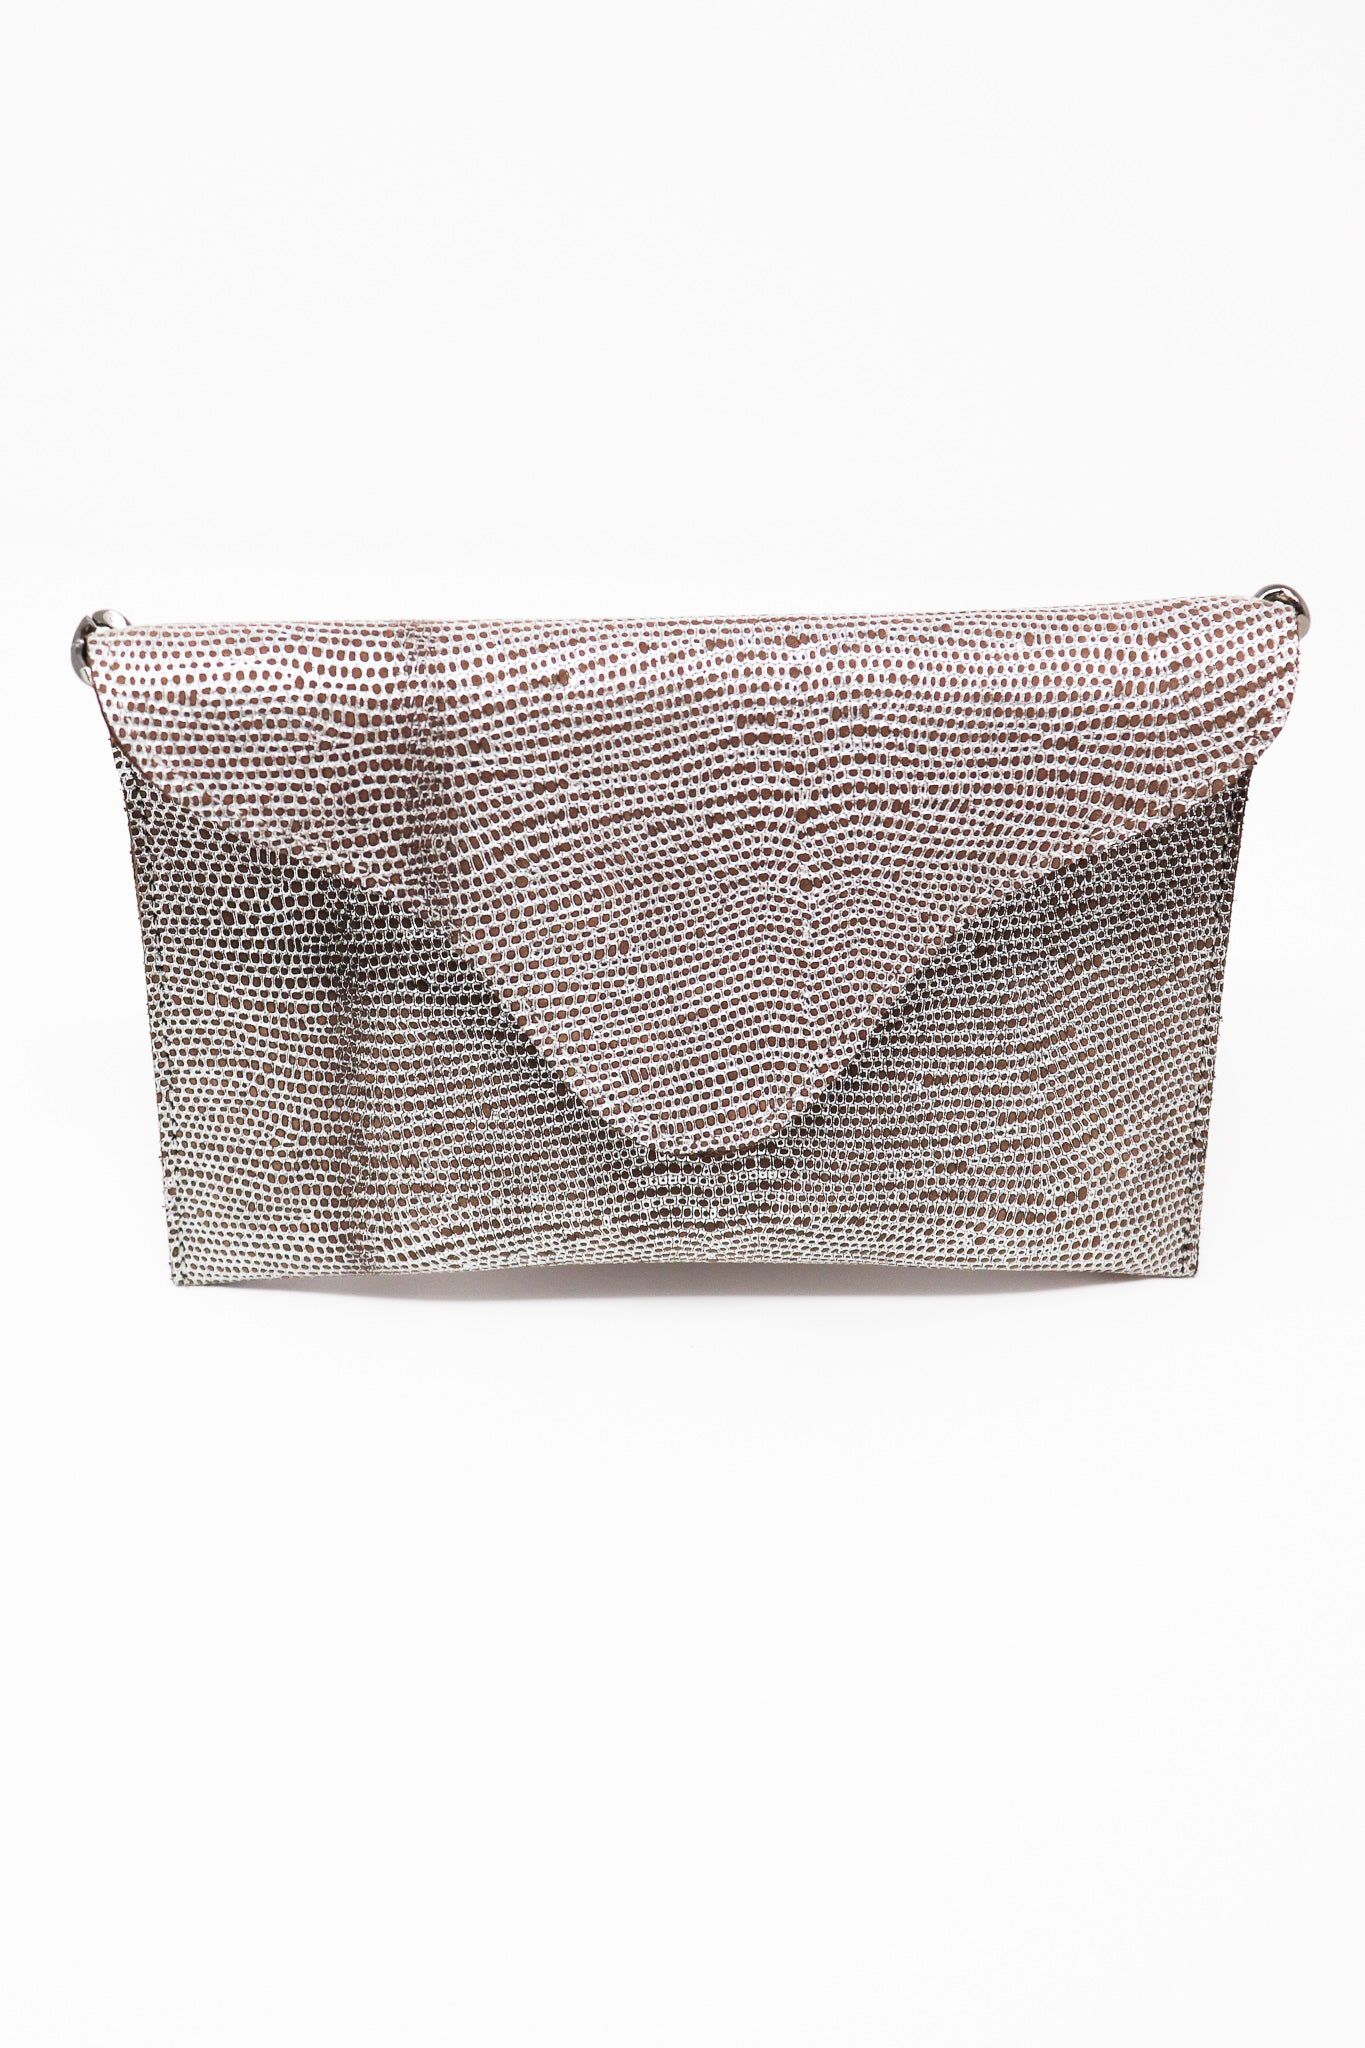 JJ Winters Silver Lizard Miley Crossbody - Gabrielle's Biloxi